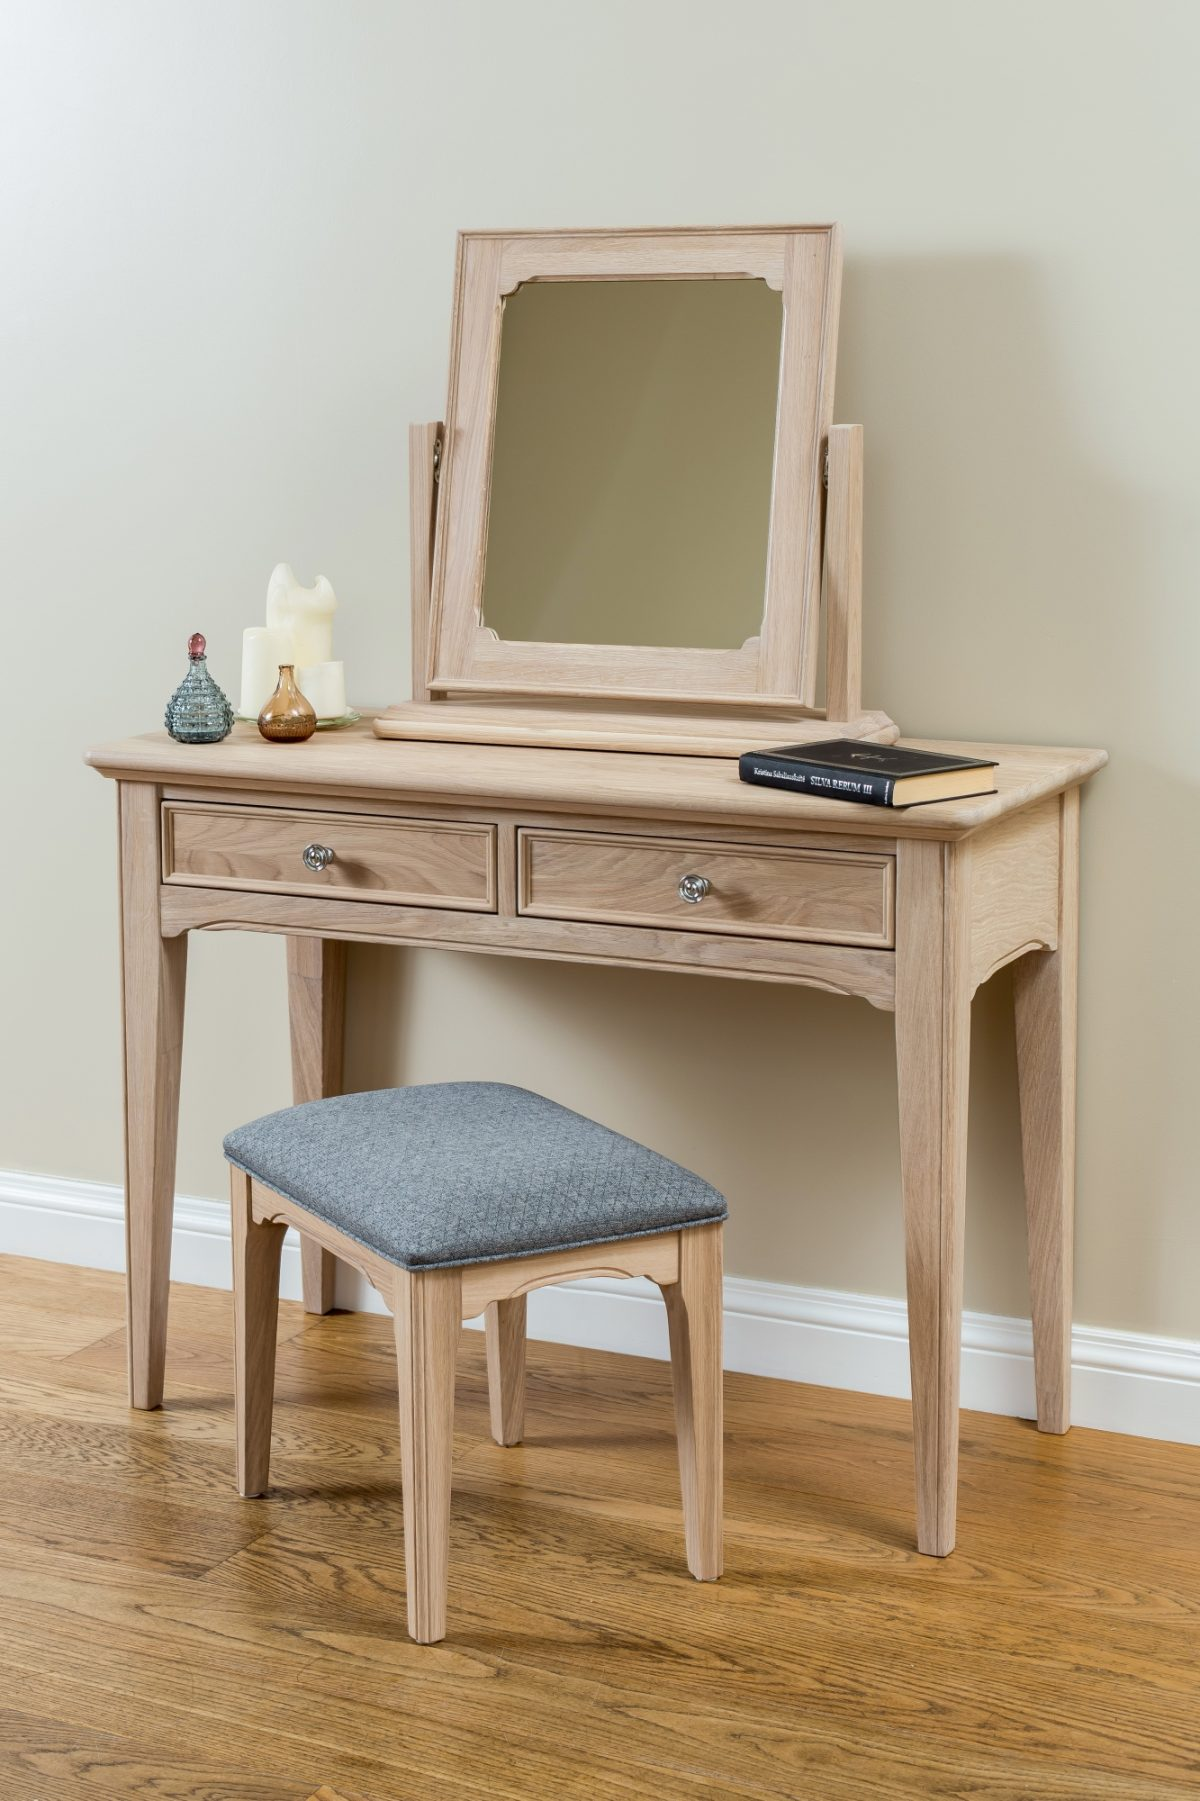 NE dressing table stool